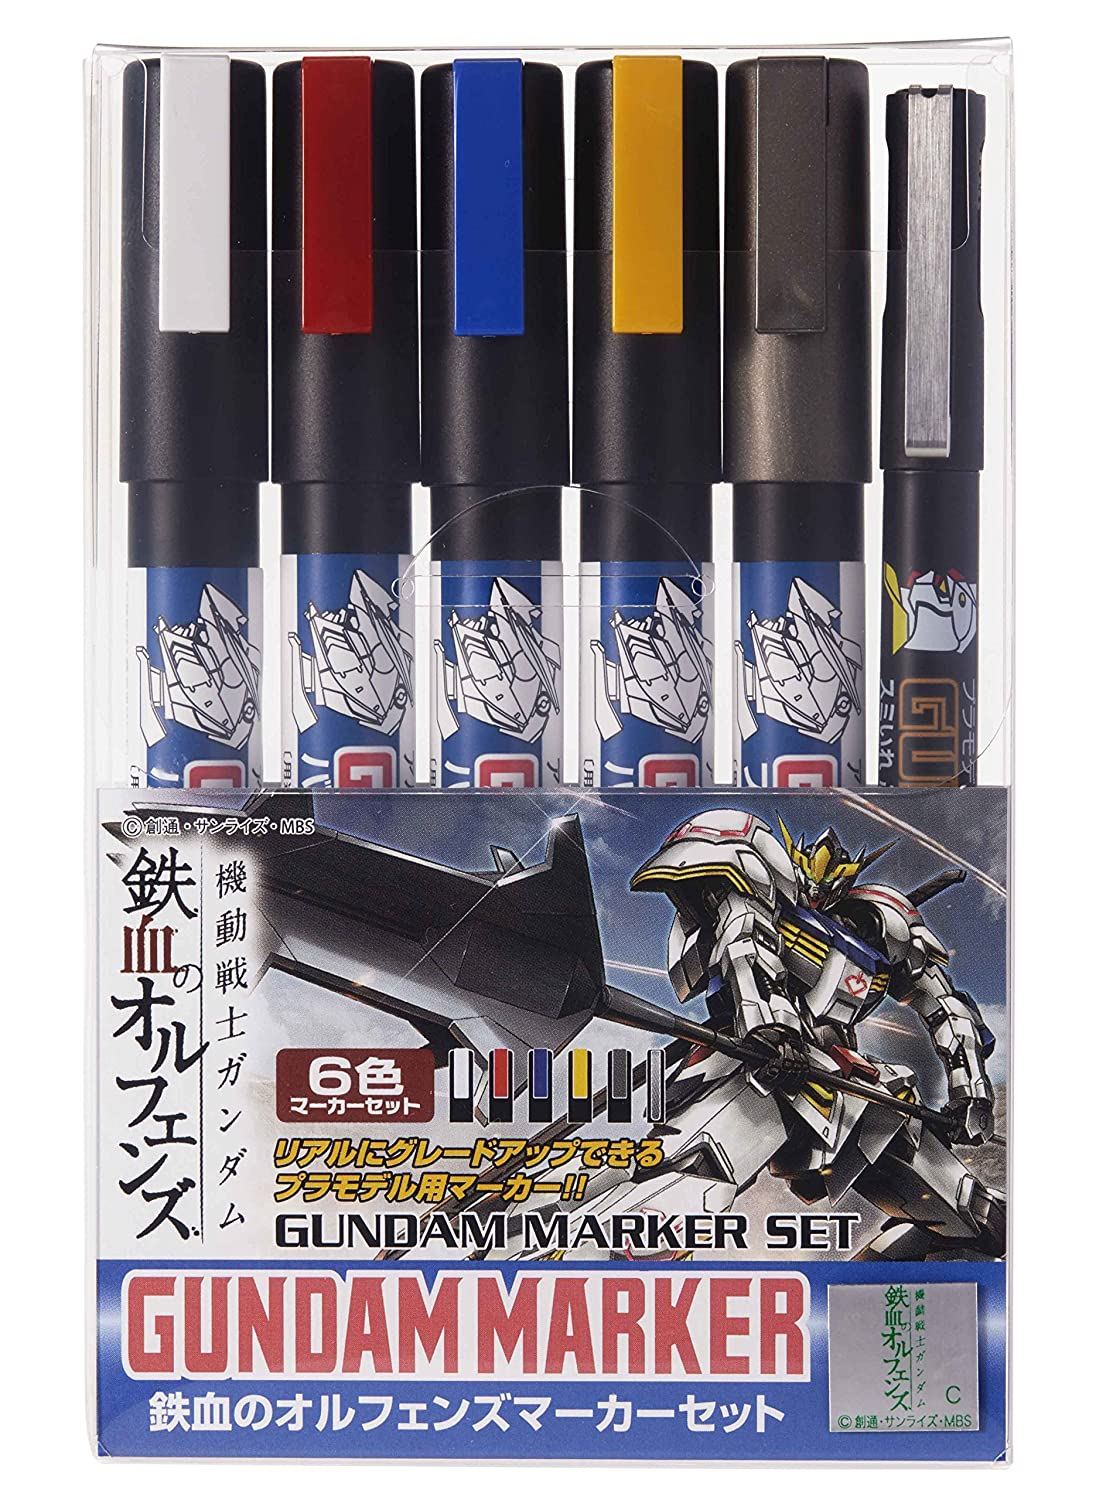 GSI Creos Gundam Marker Orufenzu Blood and iron set (6 Markers) by GSI Creos